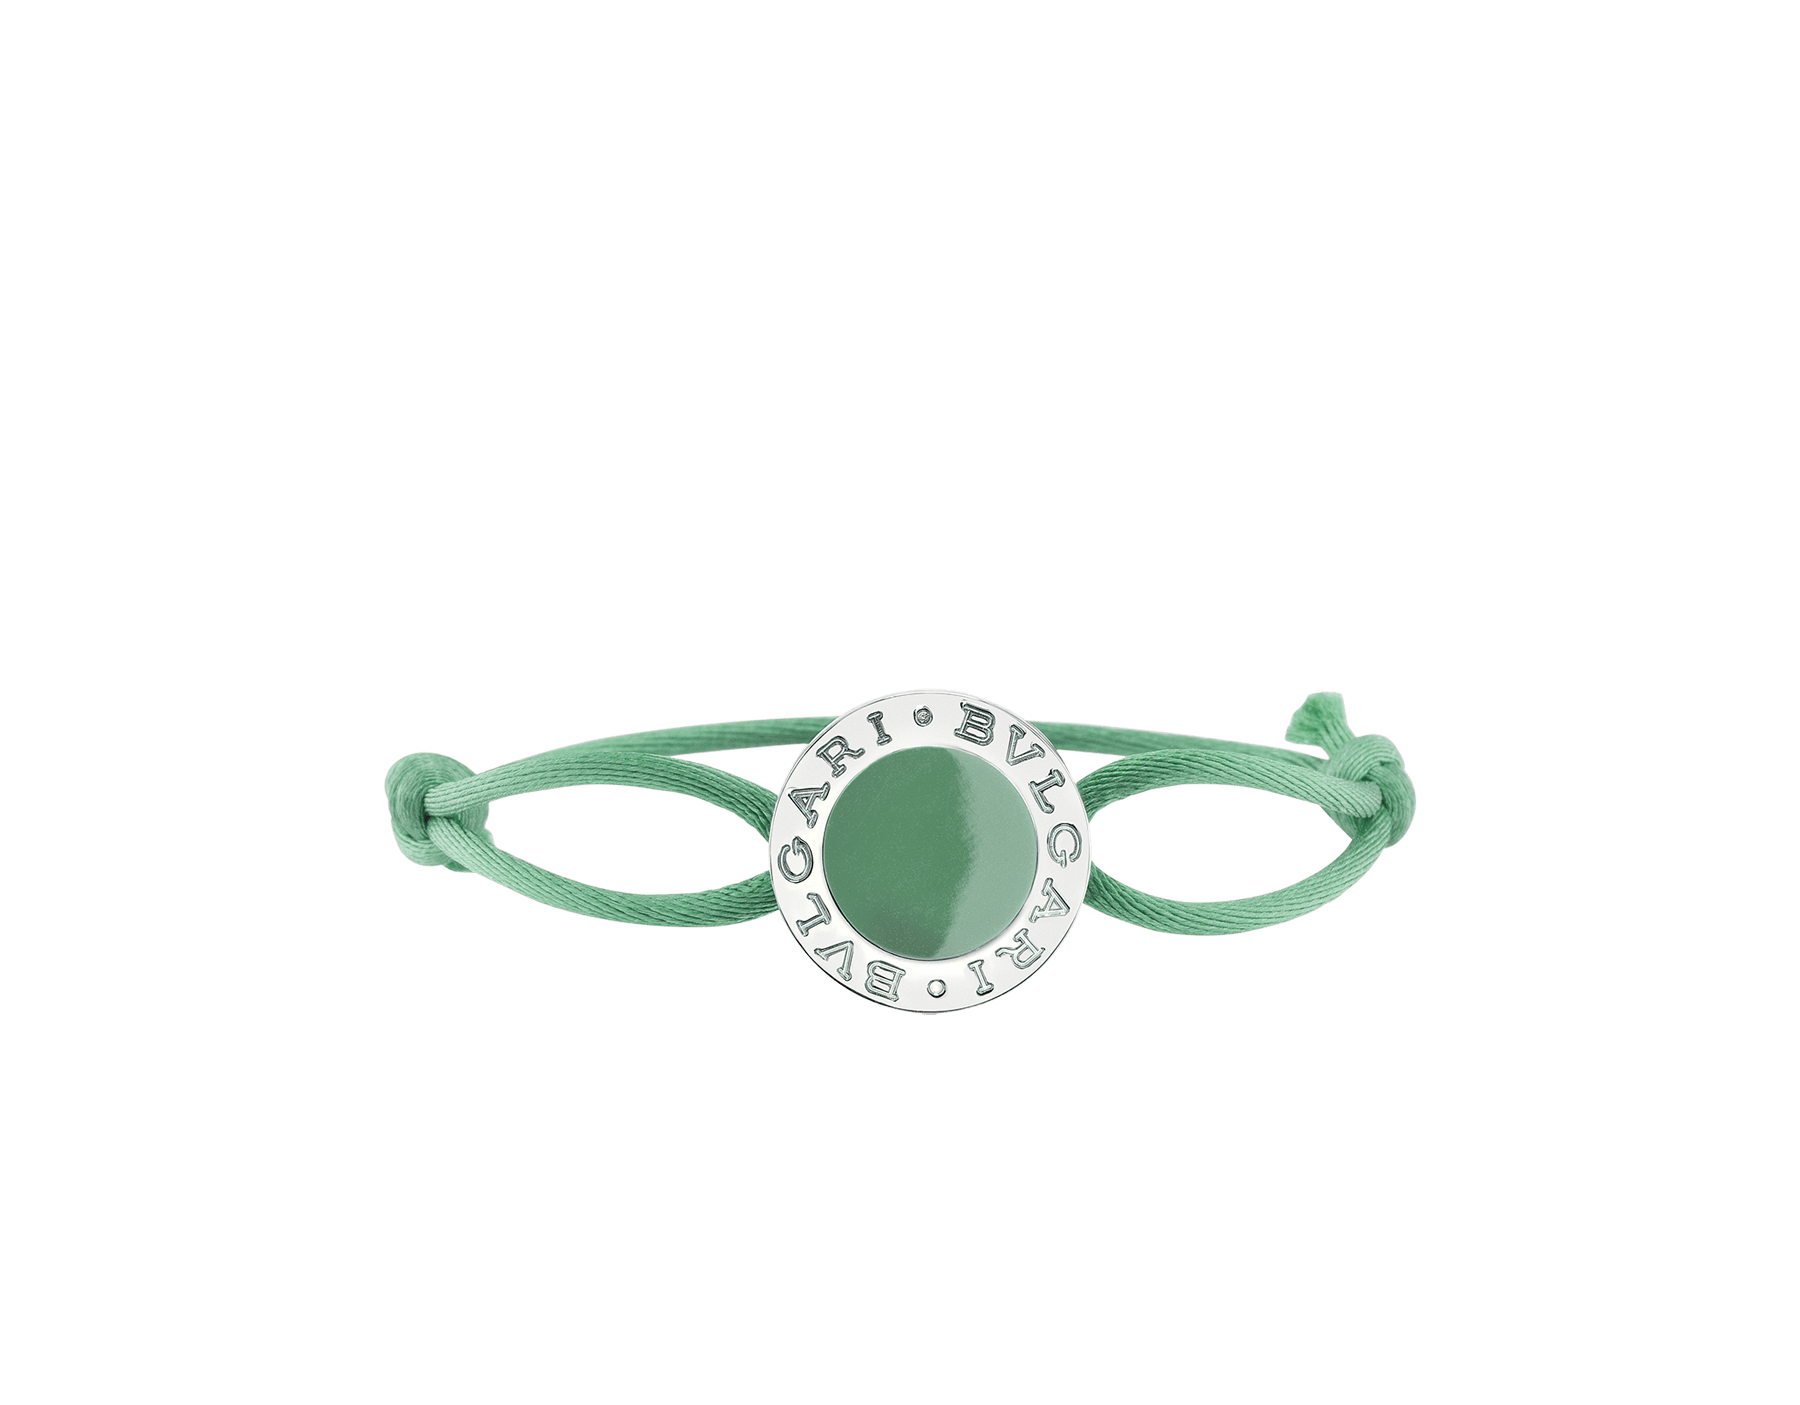 BVLGARI BVLGARI bracelet in tropical tourquoise fabric with an iconic logo décor in sterling silver and tropical tourquoise enamel. 288456 image 1